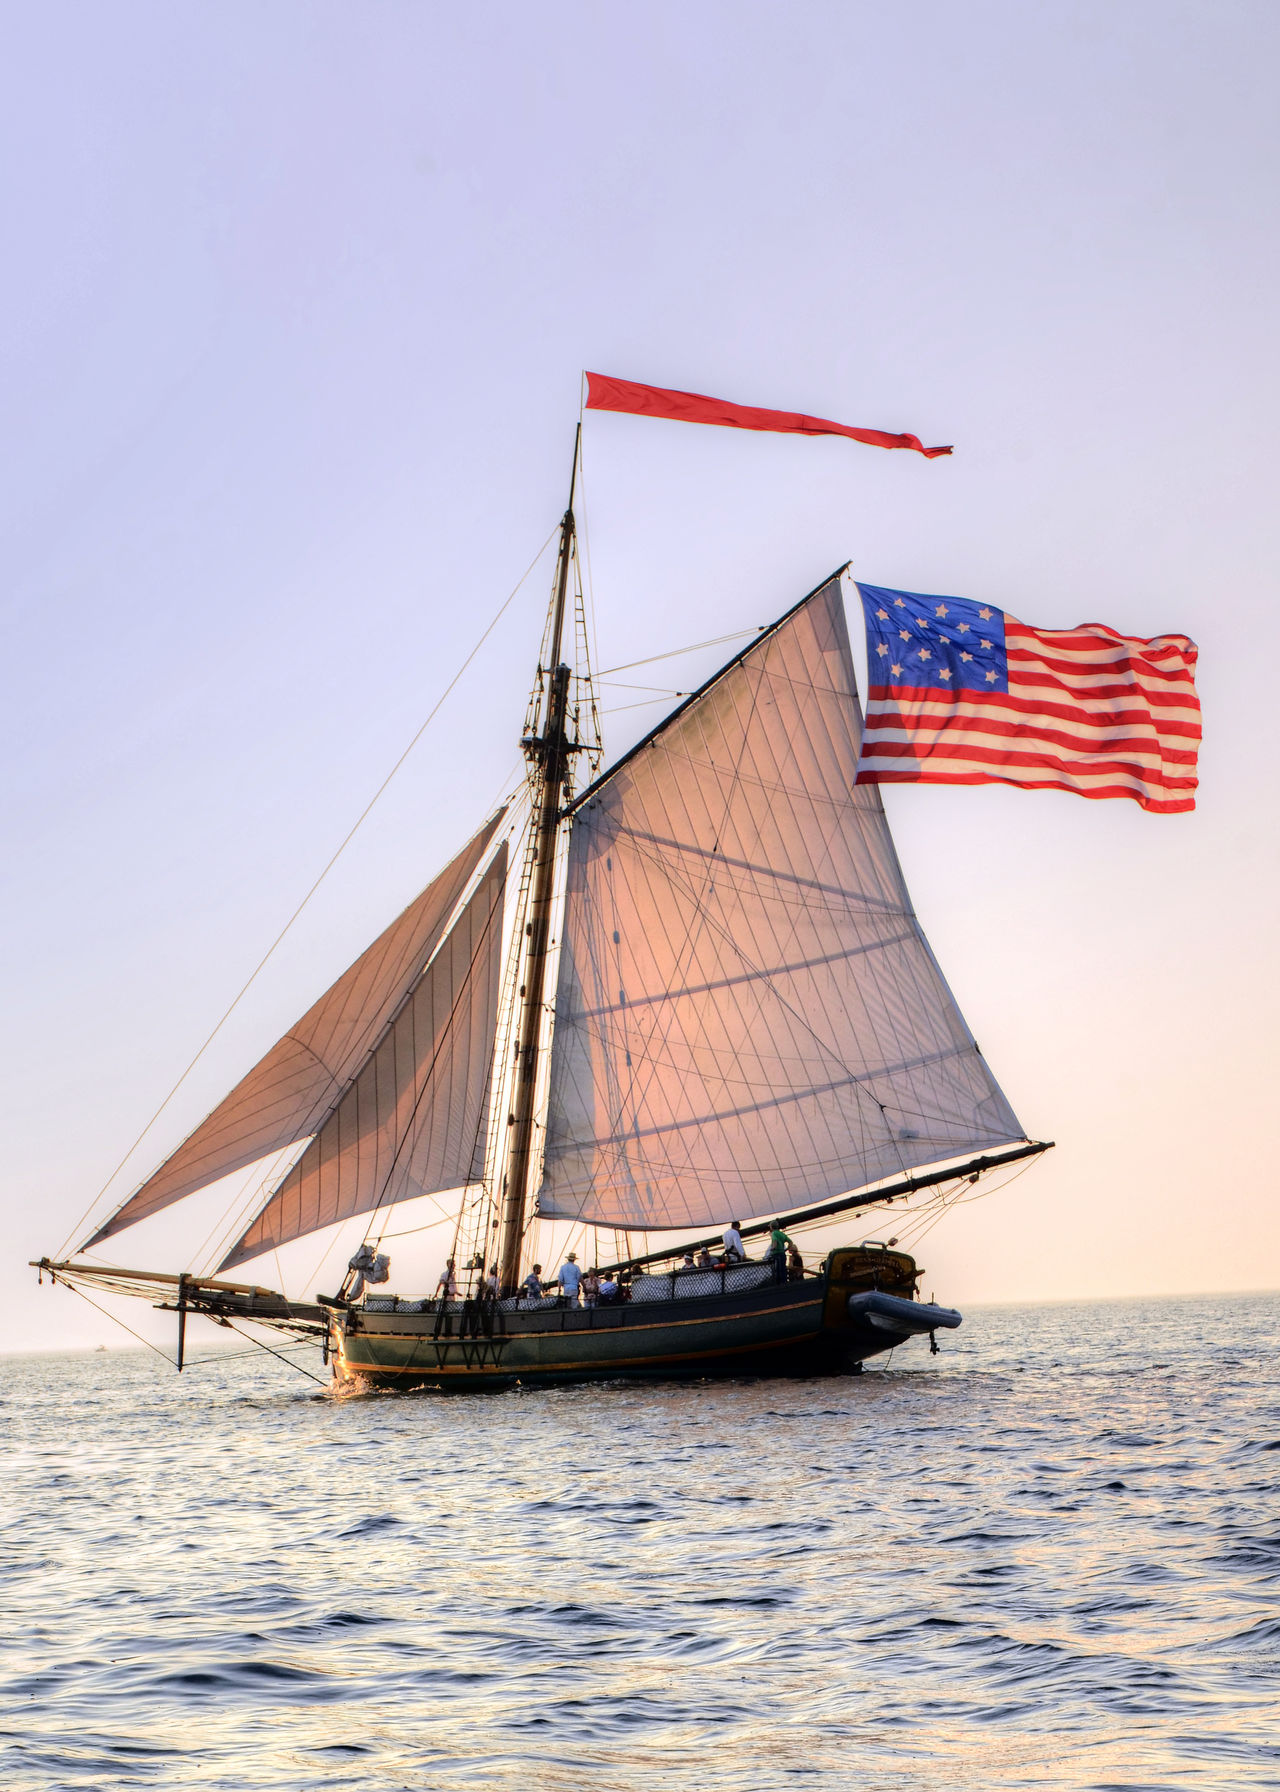 Beautiful stock photos of leinwand, flag, nautical vessel, water, no people